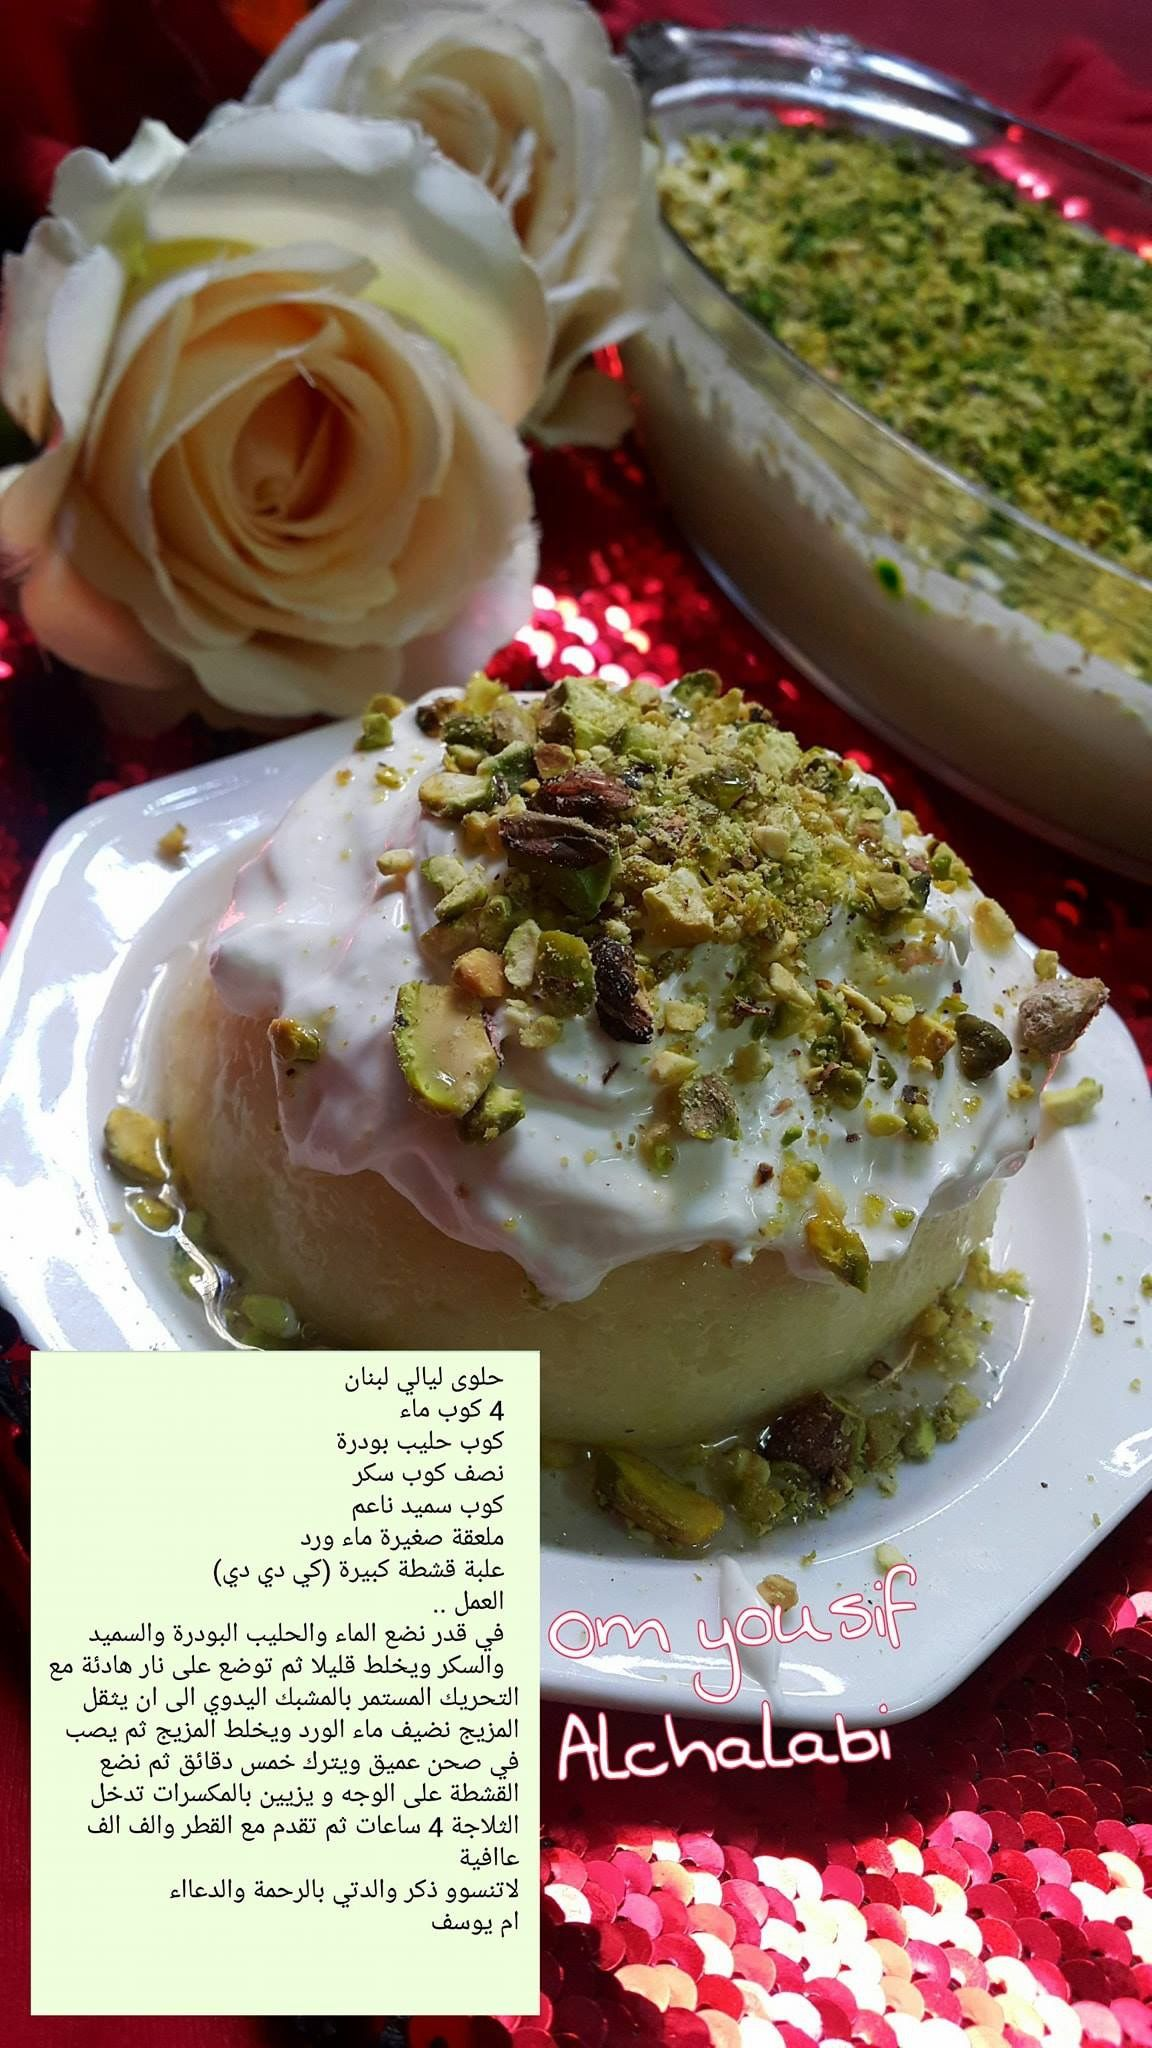 Pin By Mariam On أكلات منوعه Arabic Sweets Recipes Recipes Food And Drink